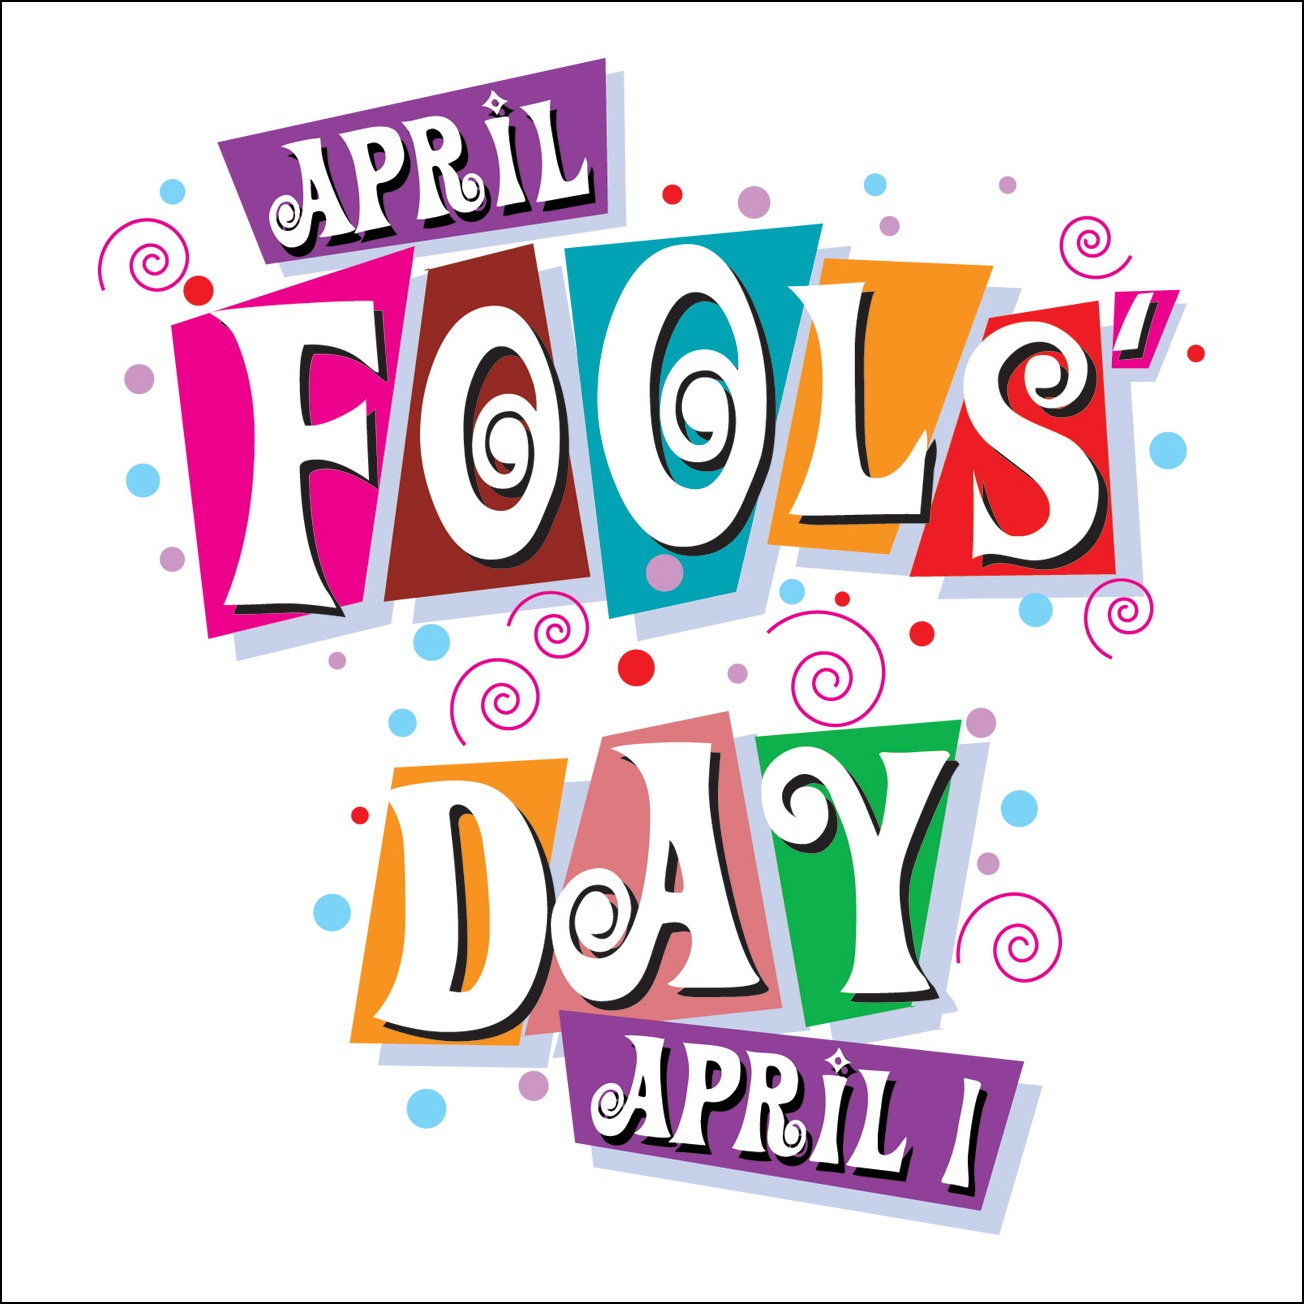 Joke clip art free. April fools day clipart